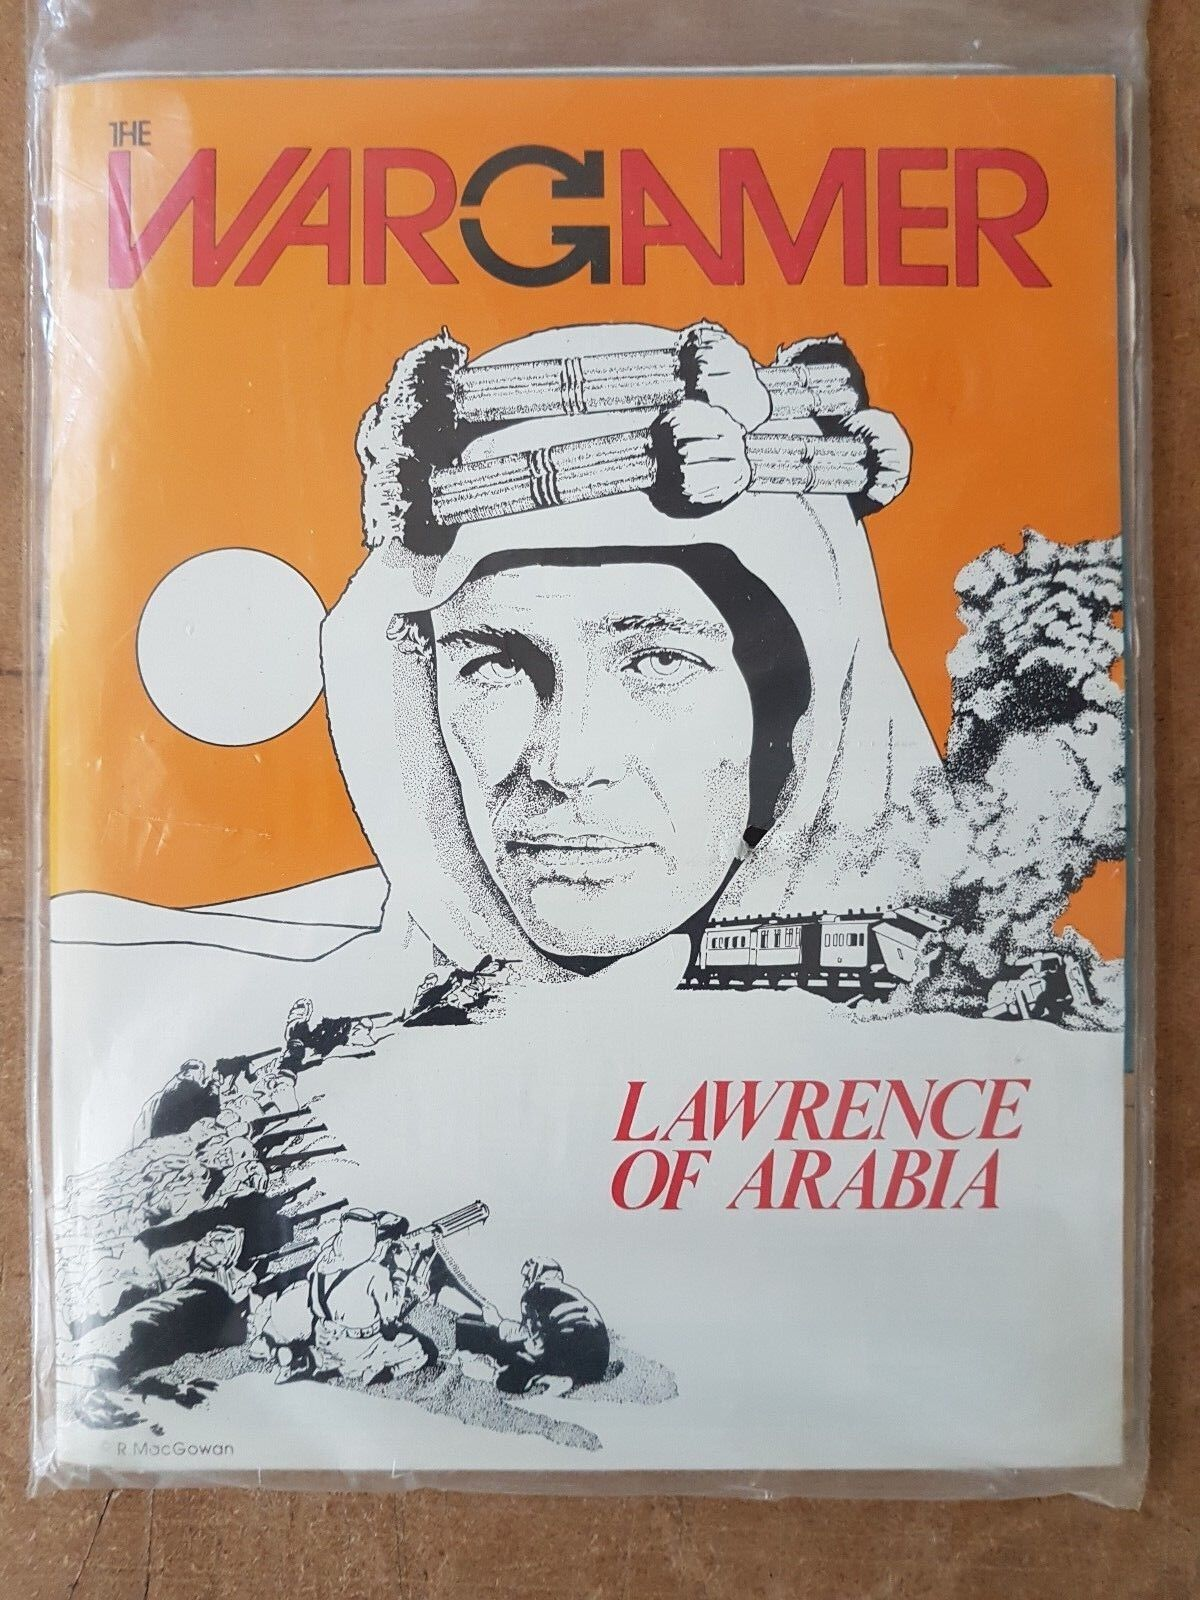 THE WARGAMER NUMBER 24 - LAWRENCE OF ARABIA - GAME UNPUNCHED